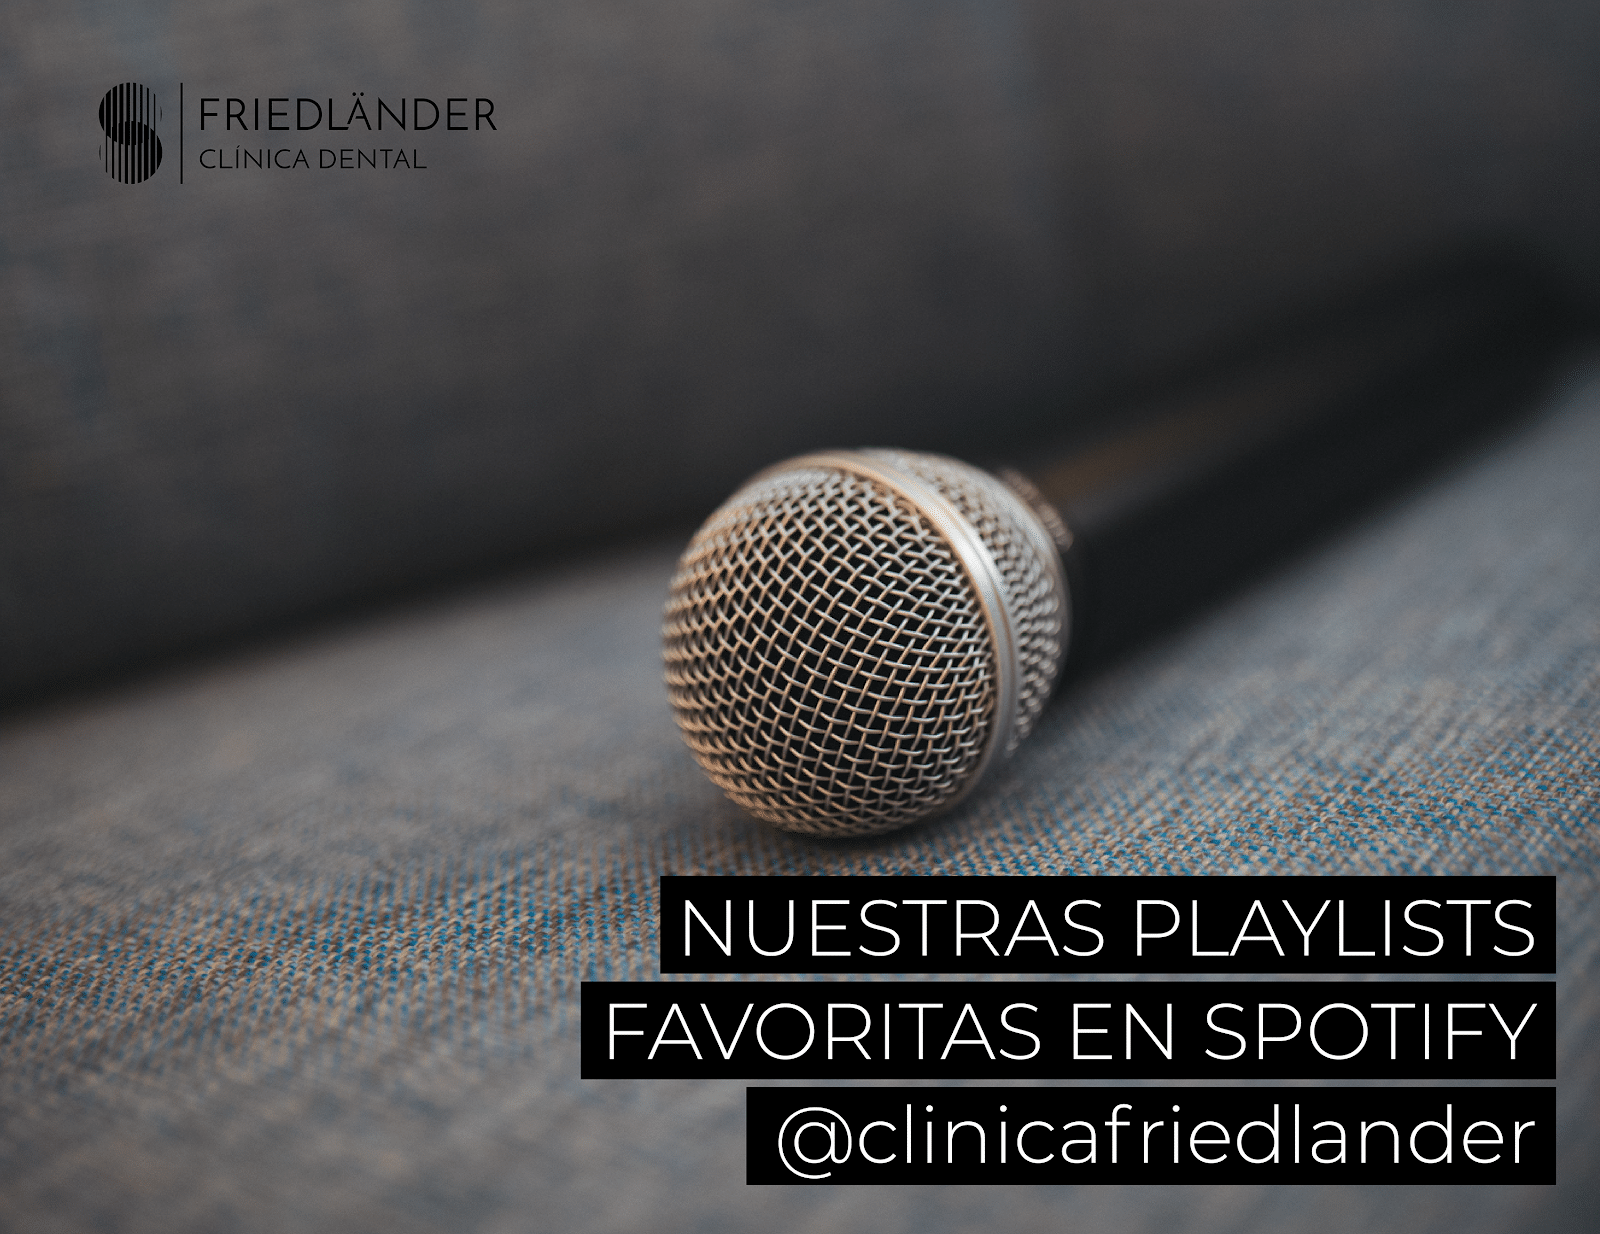 Nuestras PlayLists favoritas en Spotify  @clinicafriedlander 2